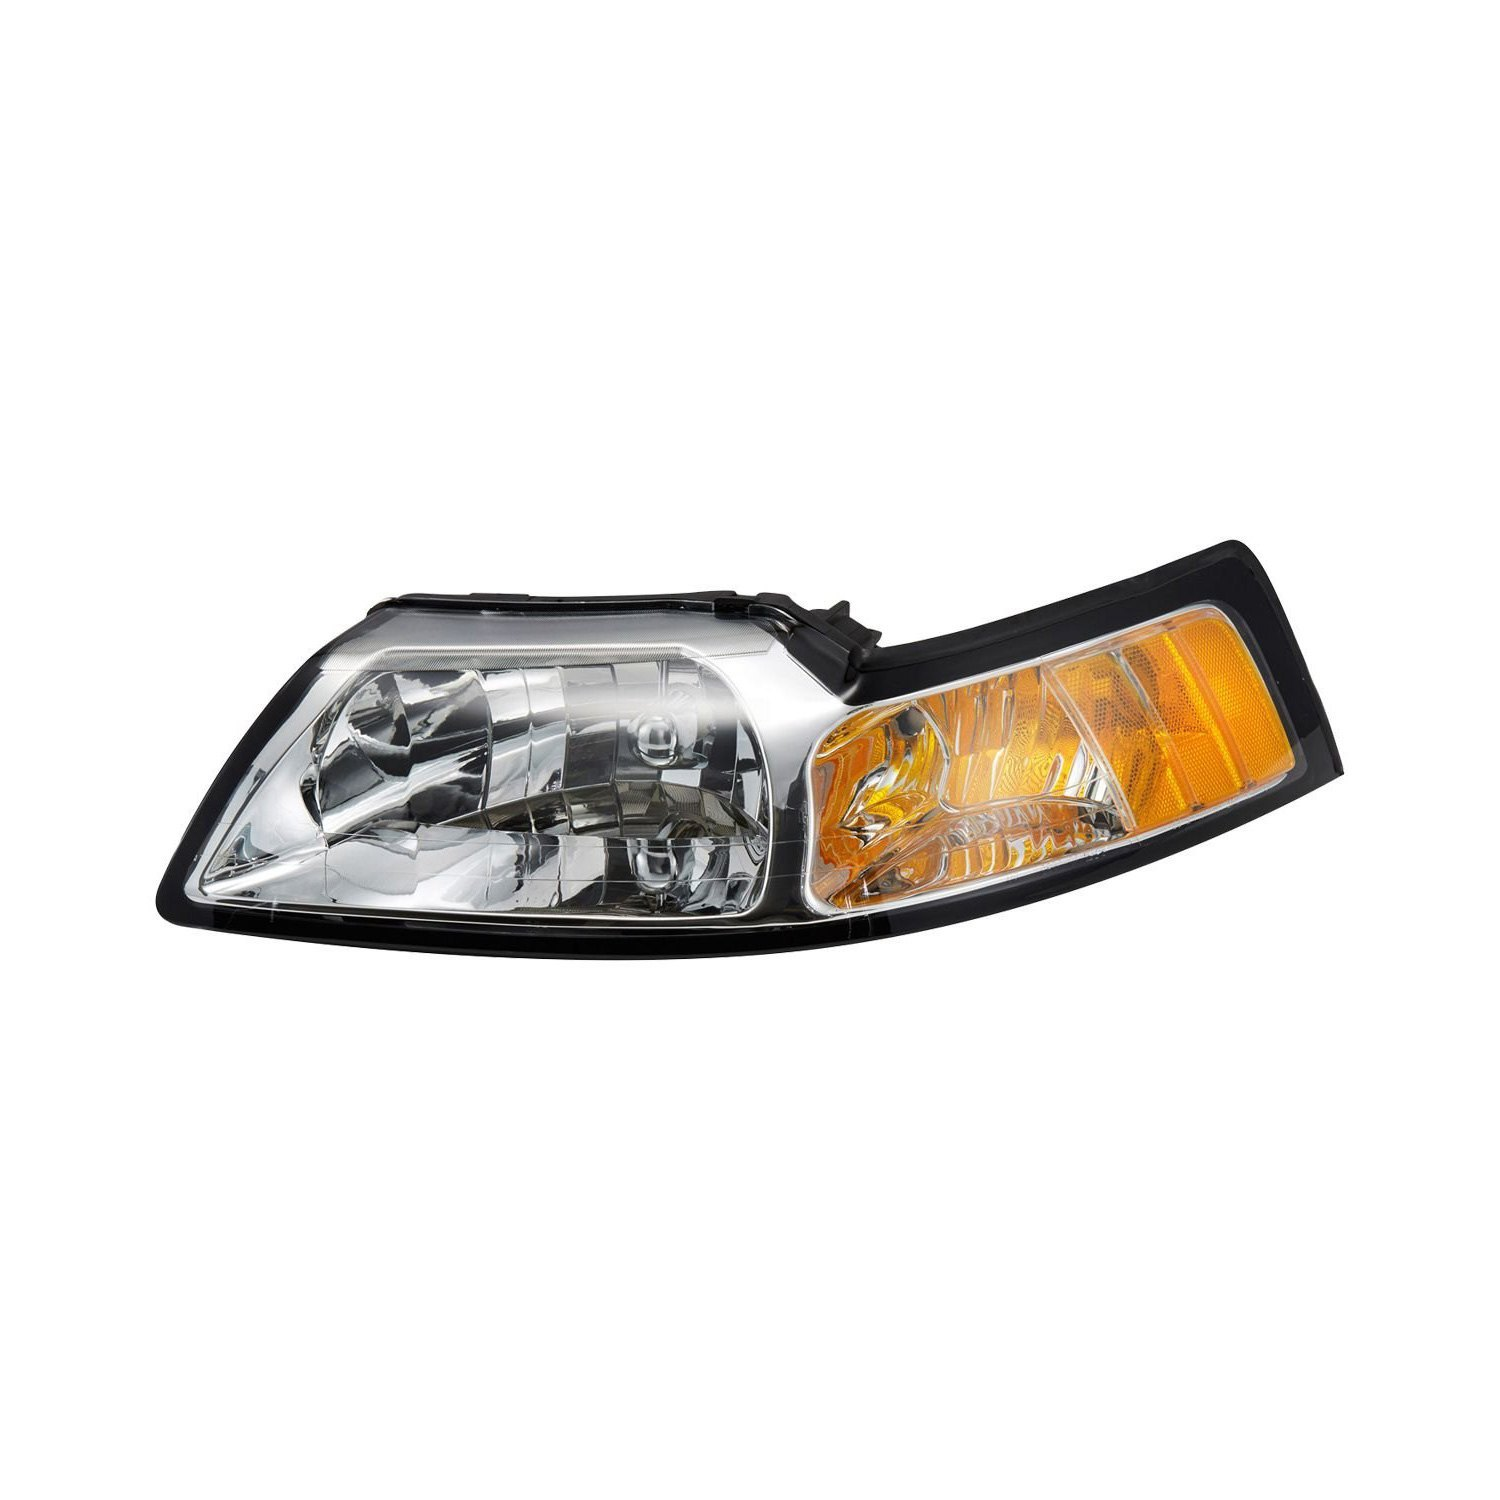 tyc ford mustang 2000 replacement headlight carid com